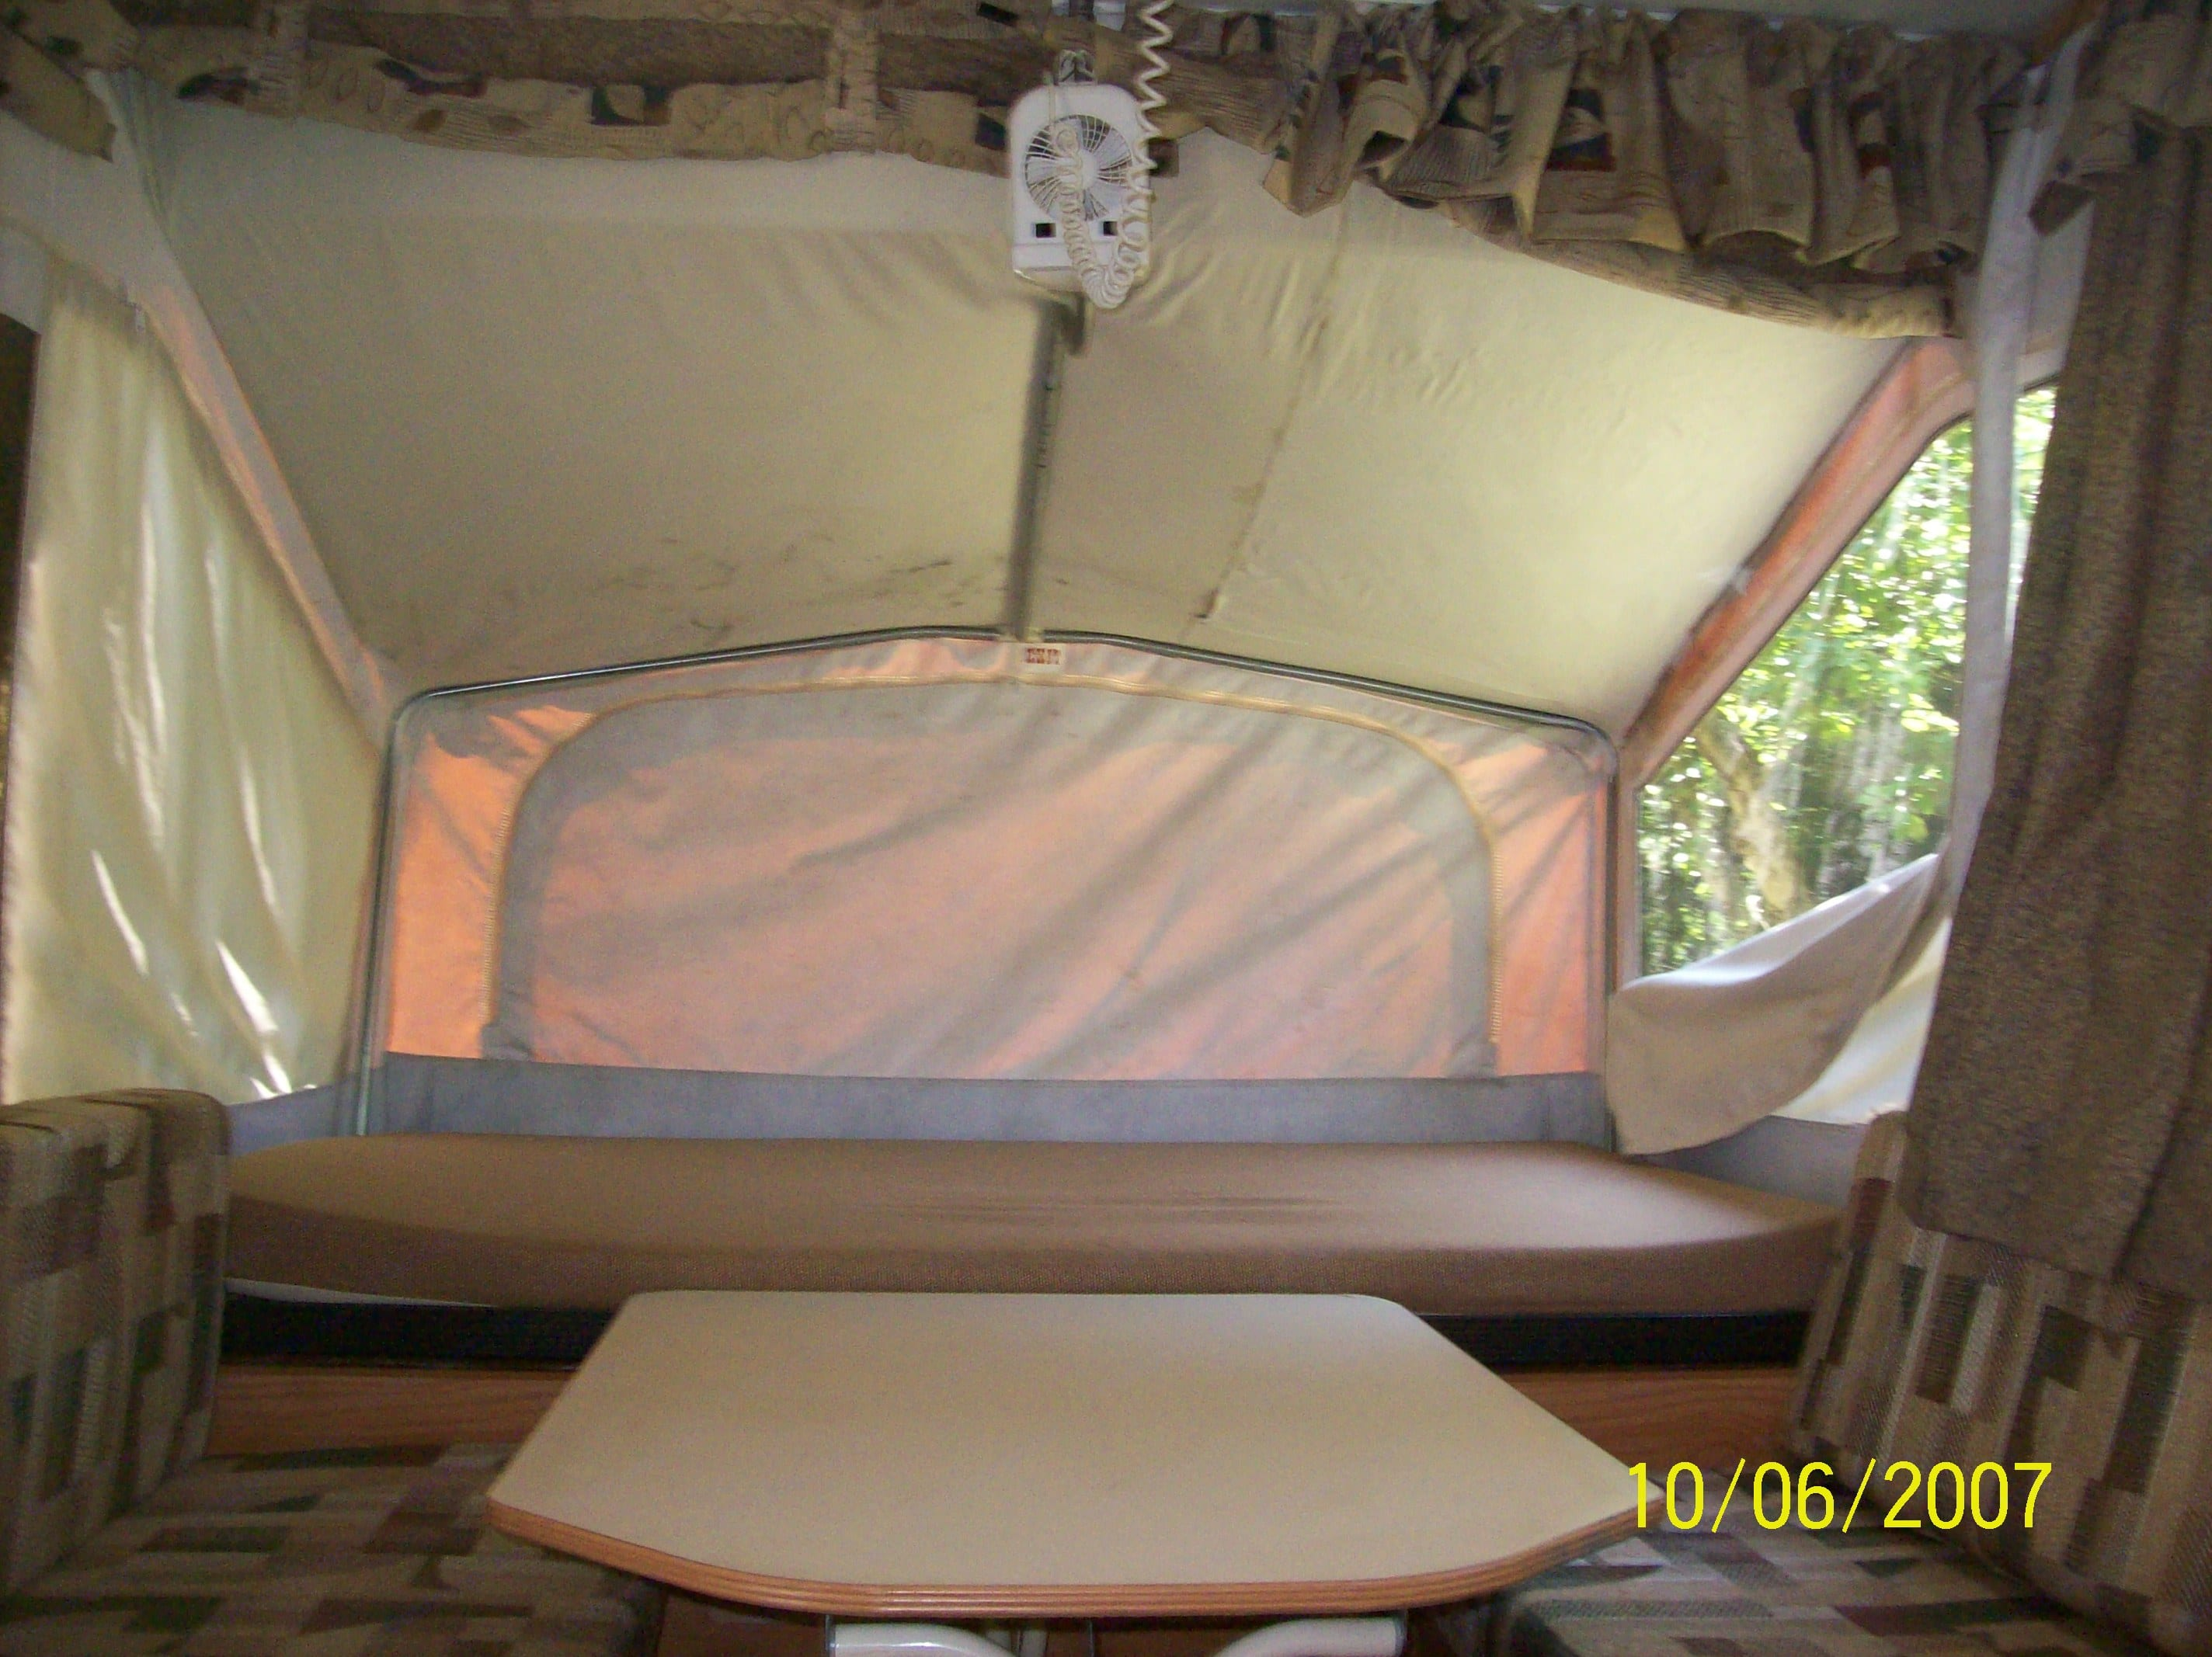 Two fans available if you have electric site. Jayco Qwest 2003